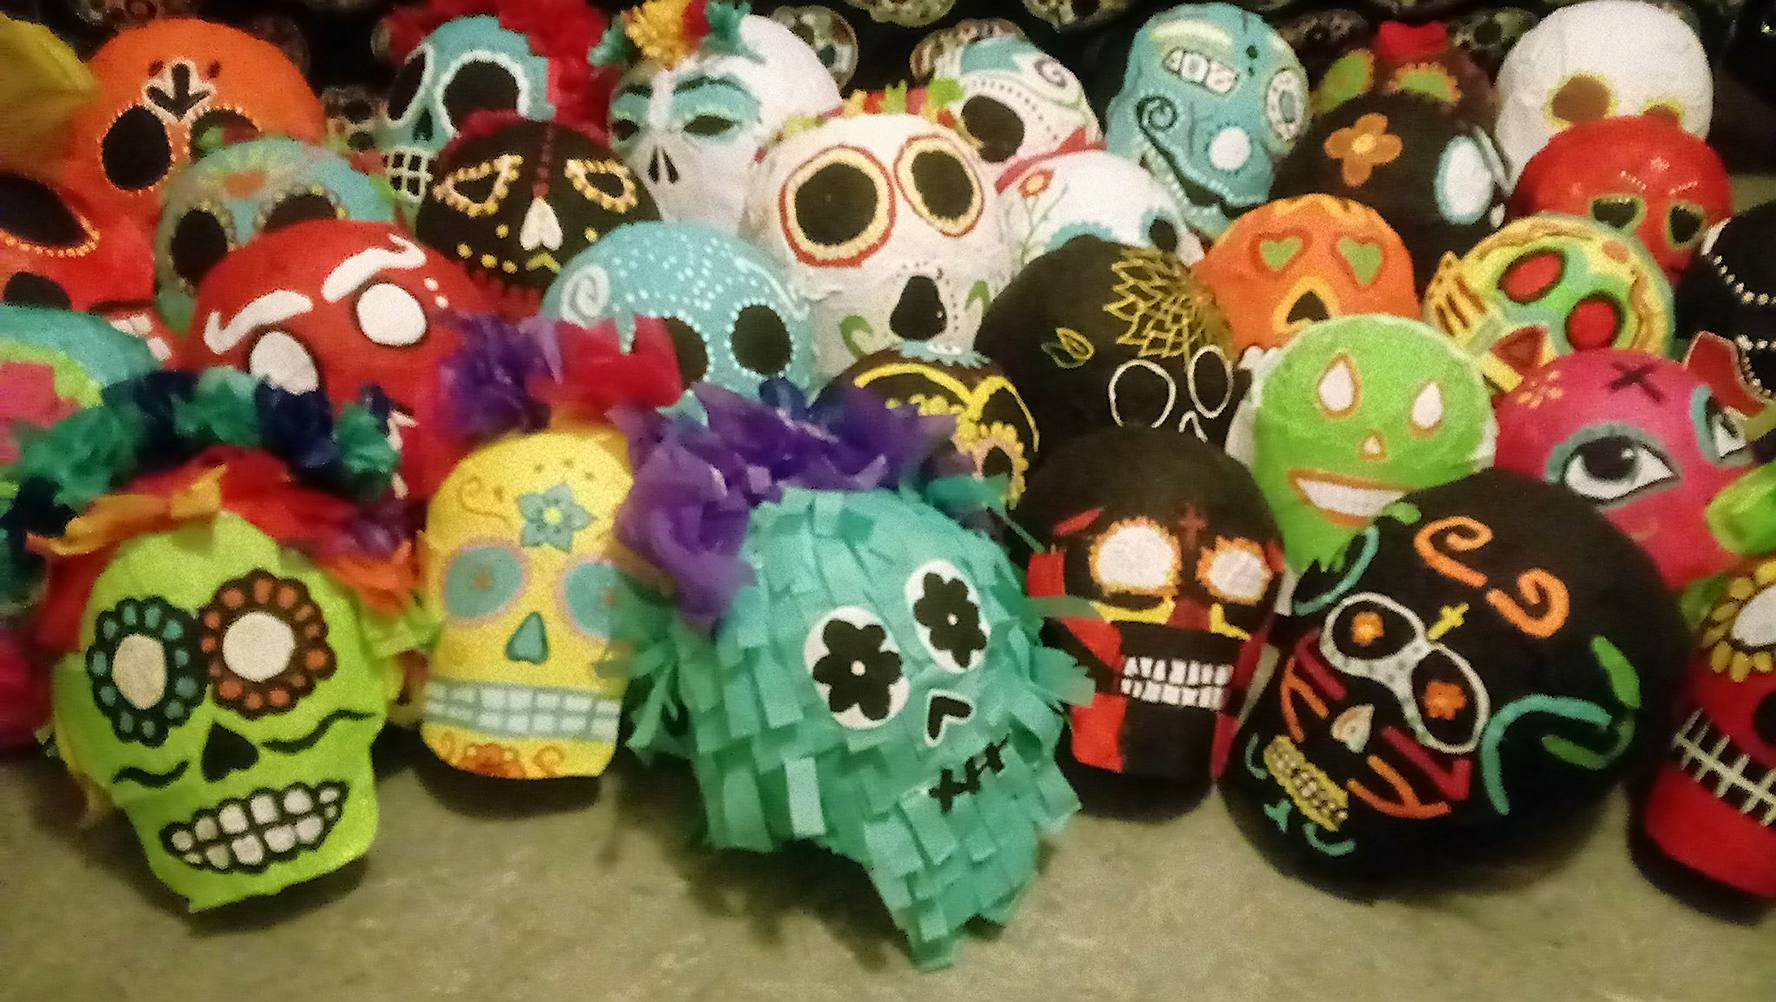 Papier-mâché decorated skulls for Day of the Dead